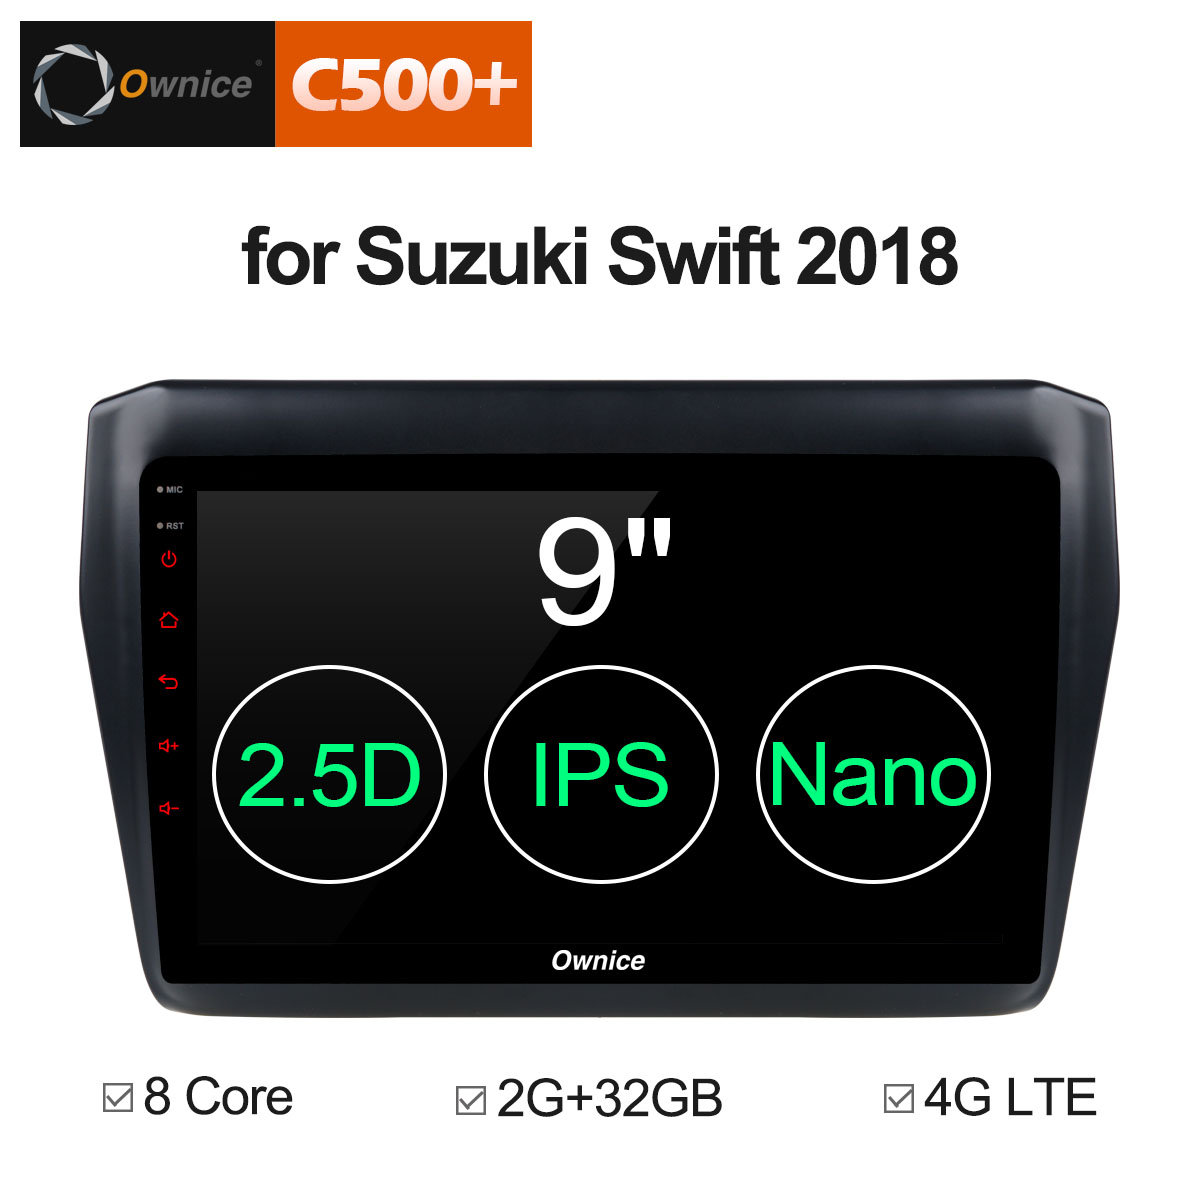 Ownice C500+ G10 Android 8.1 For SUZUKI SWIFT 2018 Octa Core 2G RAM 32G ROM 8 CORE Car DVD Player GPS car RDS Radio wifi 4G LTE ownice c500 octa core android 6 0 car dvd gps for mazda 6 ruiyi ultra 2008 2009 2010 2011 2012 wifi 4g radio 2gb ram bt 32g rom